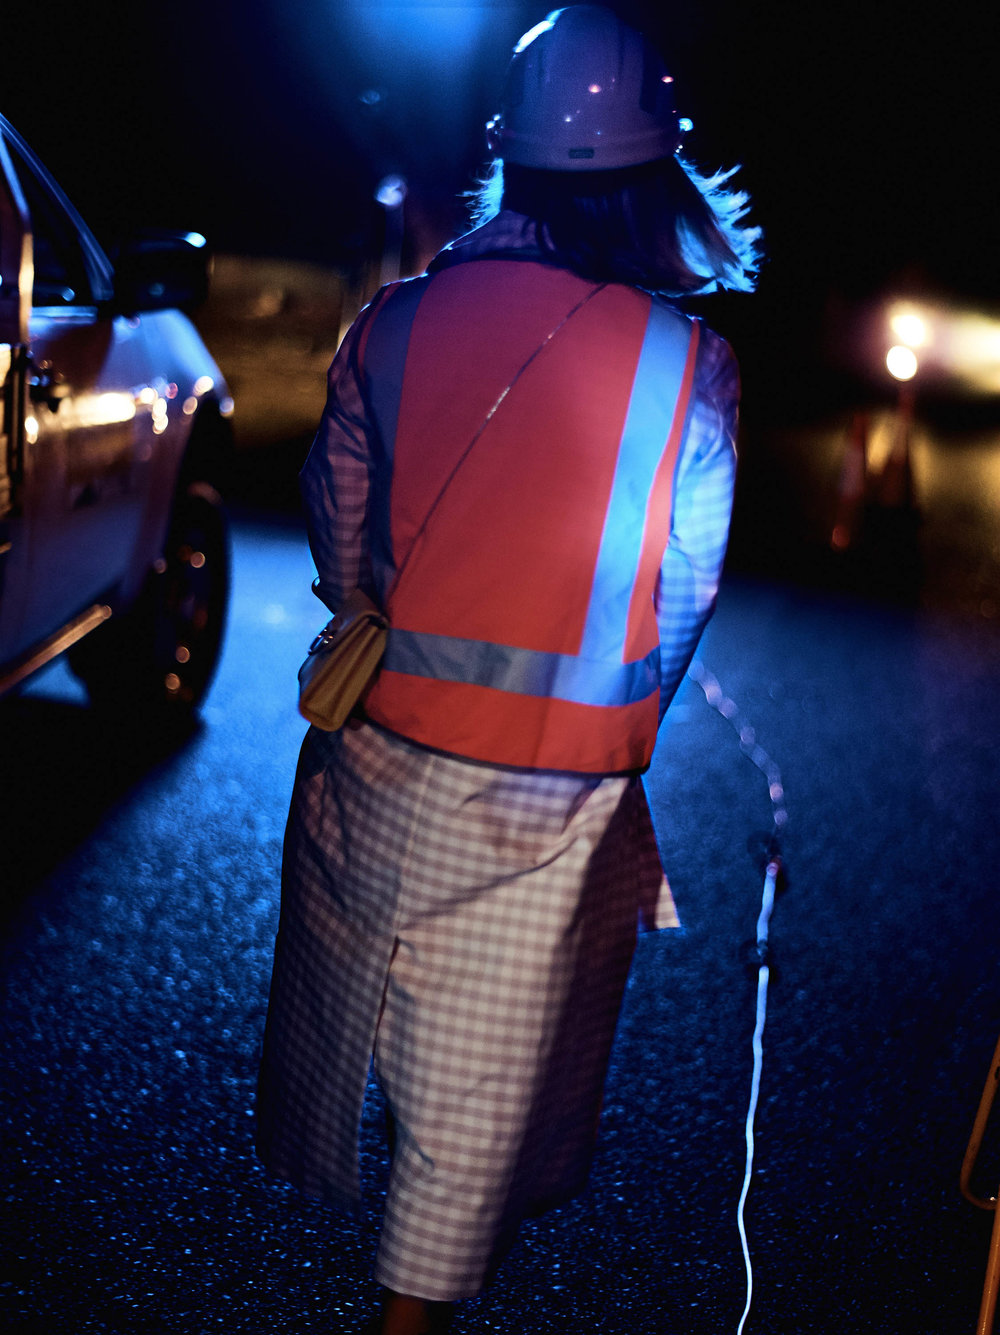 180215_NIGHT_ROAD_WORKERS_SHOT02-027.jpg